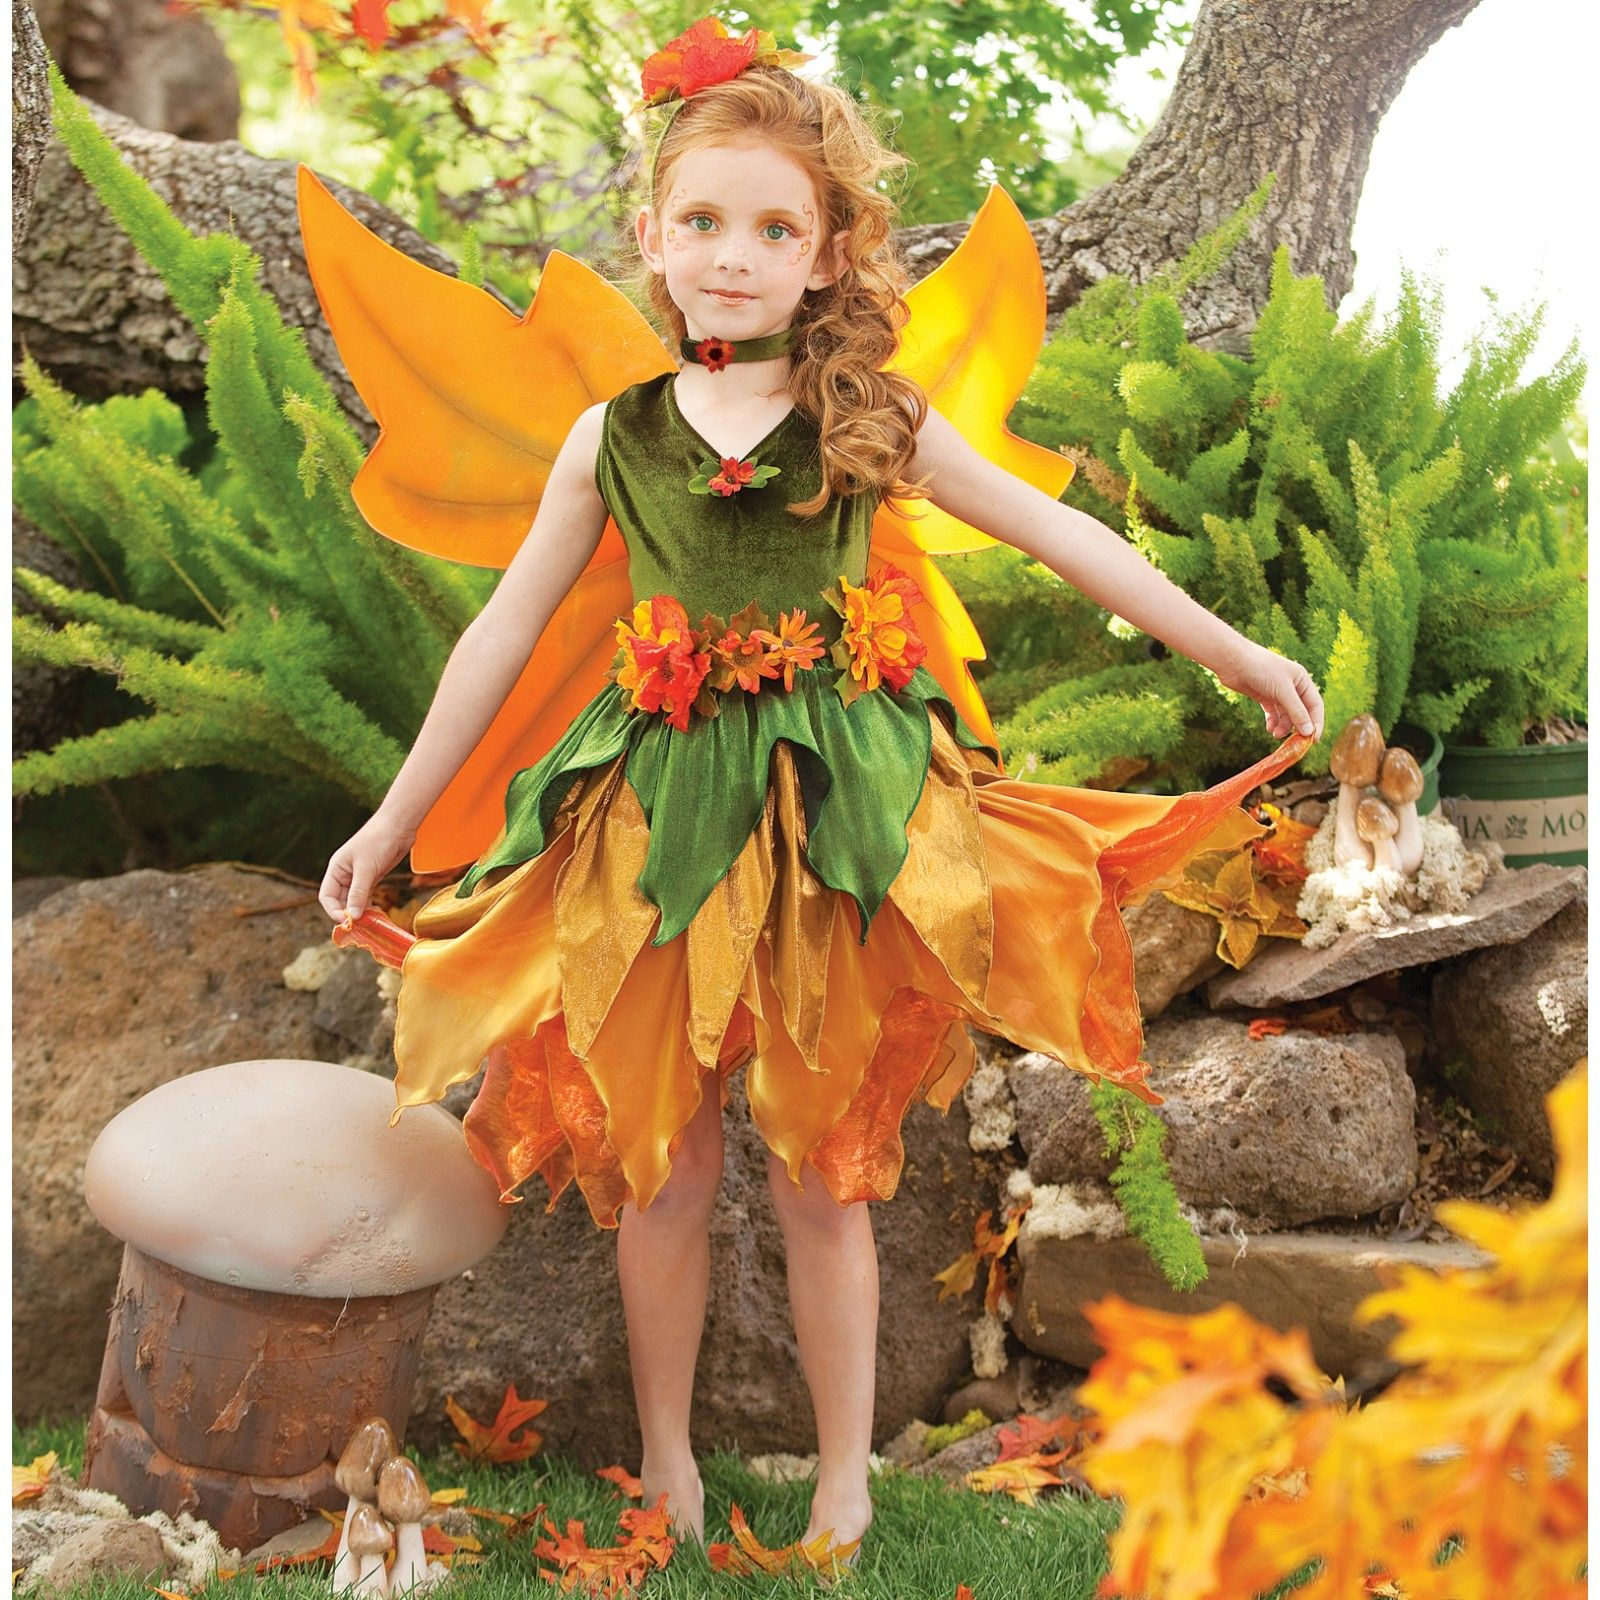 Marvelous What A Beautiful Fairy Costume! Iu0027d Love To Make This For My Girls.